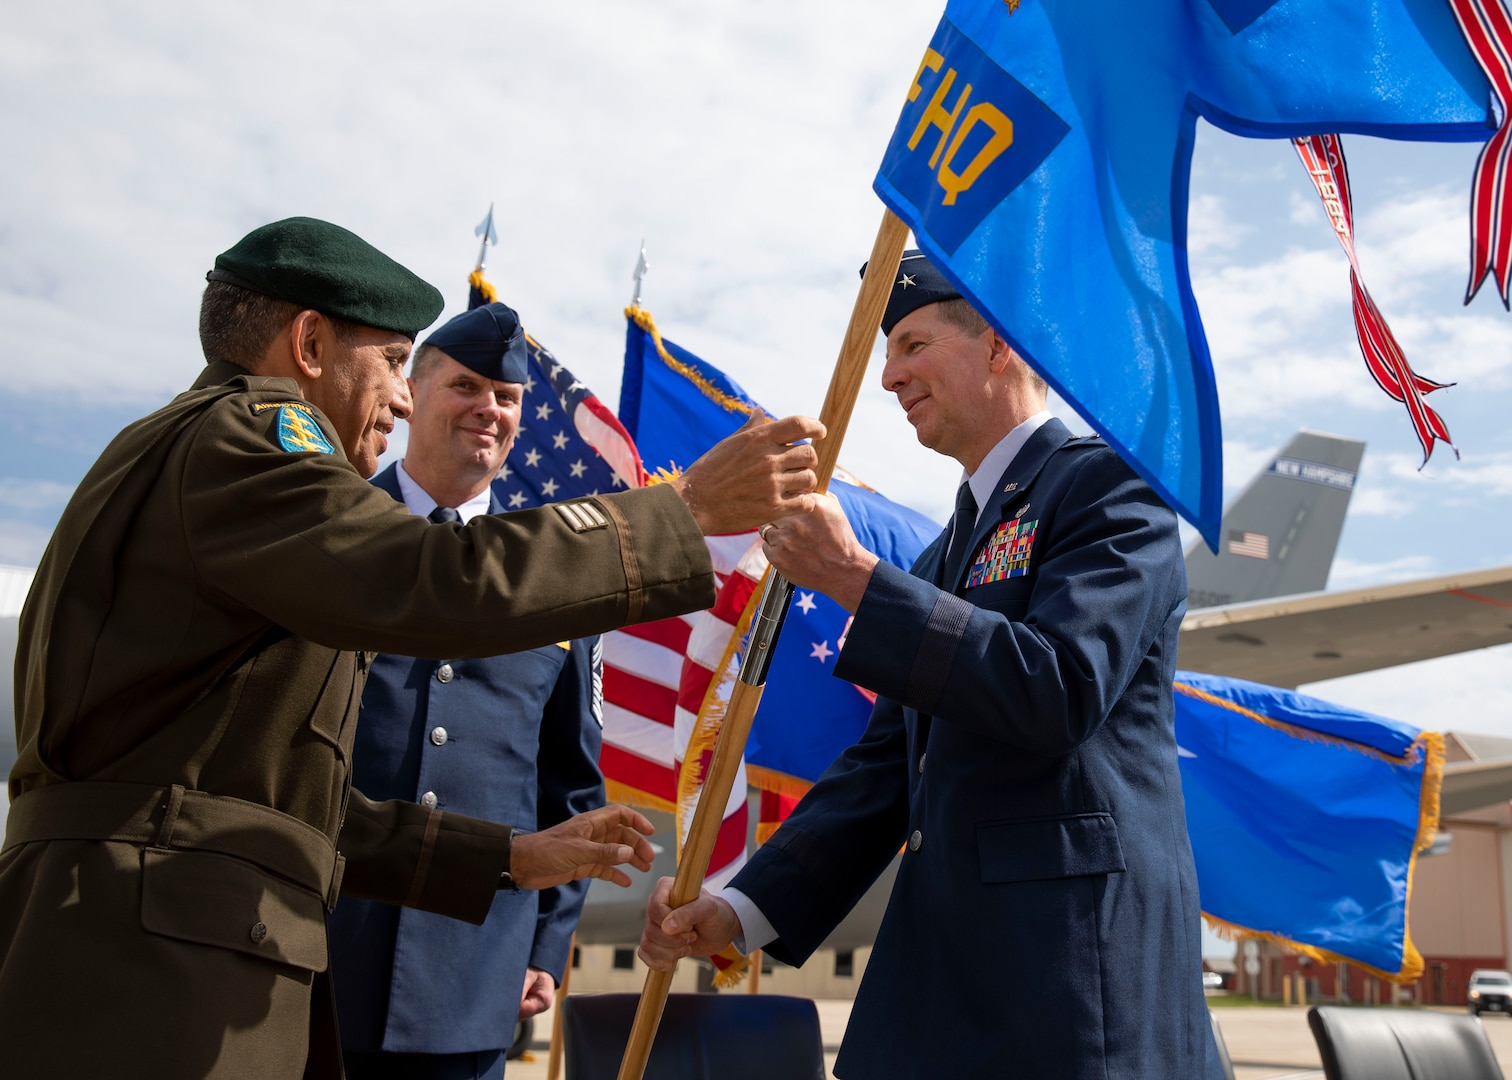 NH Adjutant Gen. David Mikolaities passes the organizational flag to incoming commander of the NH Air National Guard, Brig. Gen. Jed French, at a change of command ceremony May 15 at Pease Air National Guard Base.